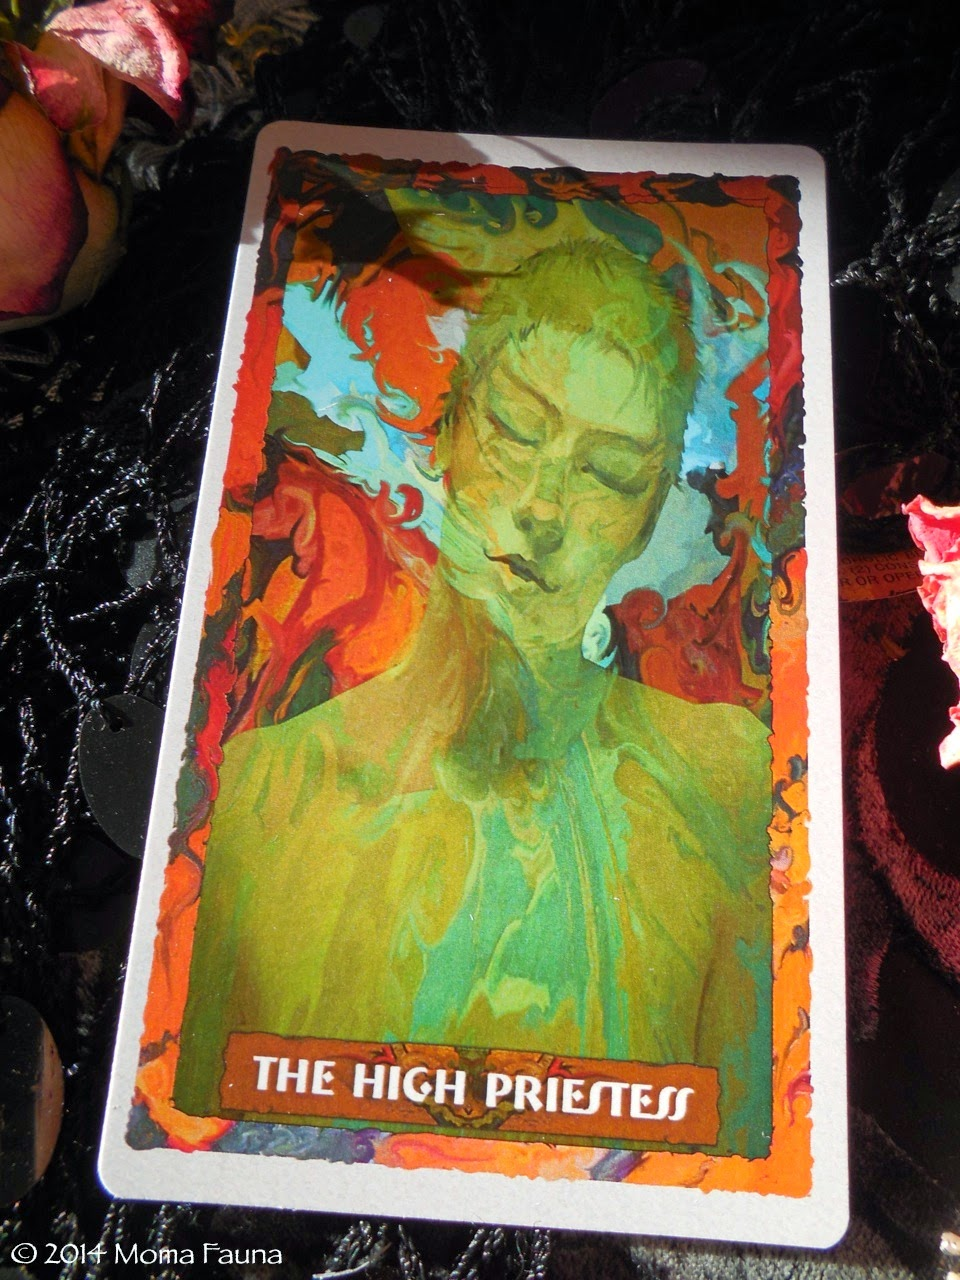 The High Priestess, so sleepy, from the Portico Tarot by Elizabeth Jordan Leggett.